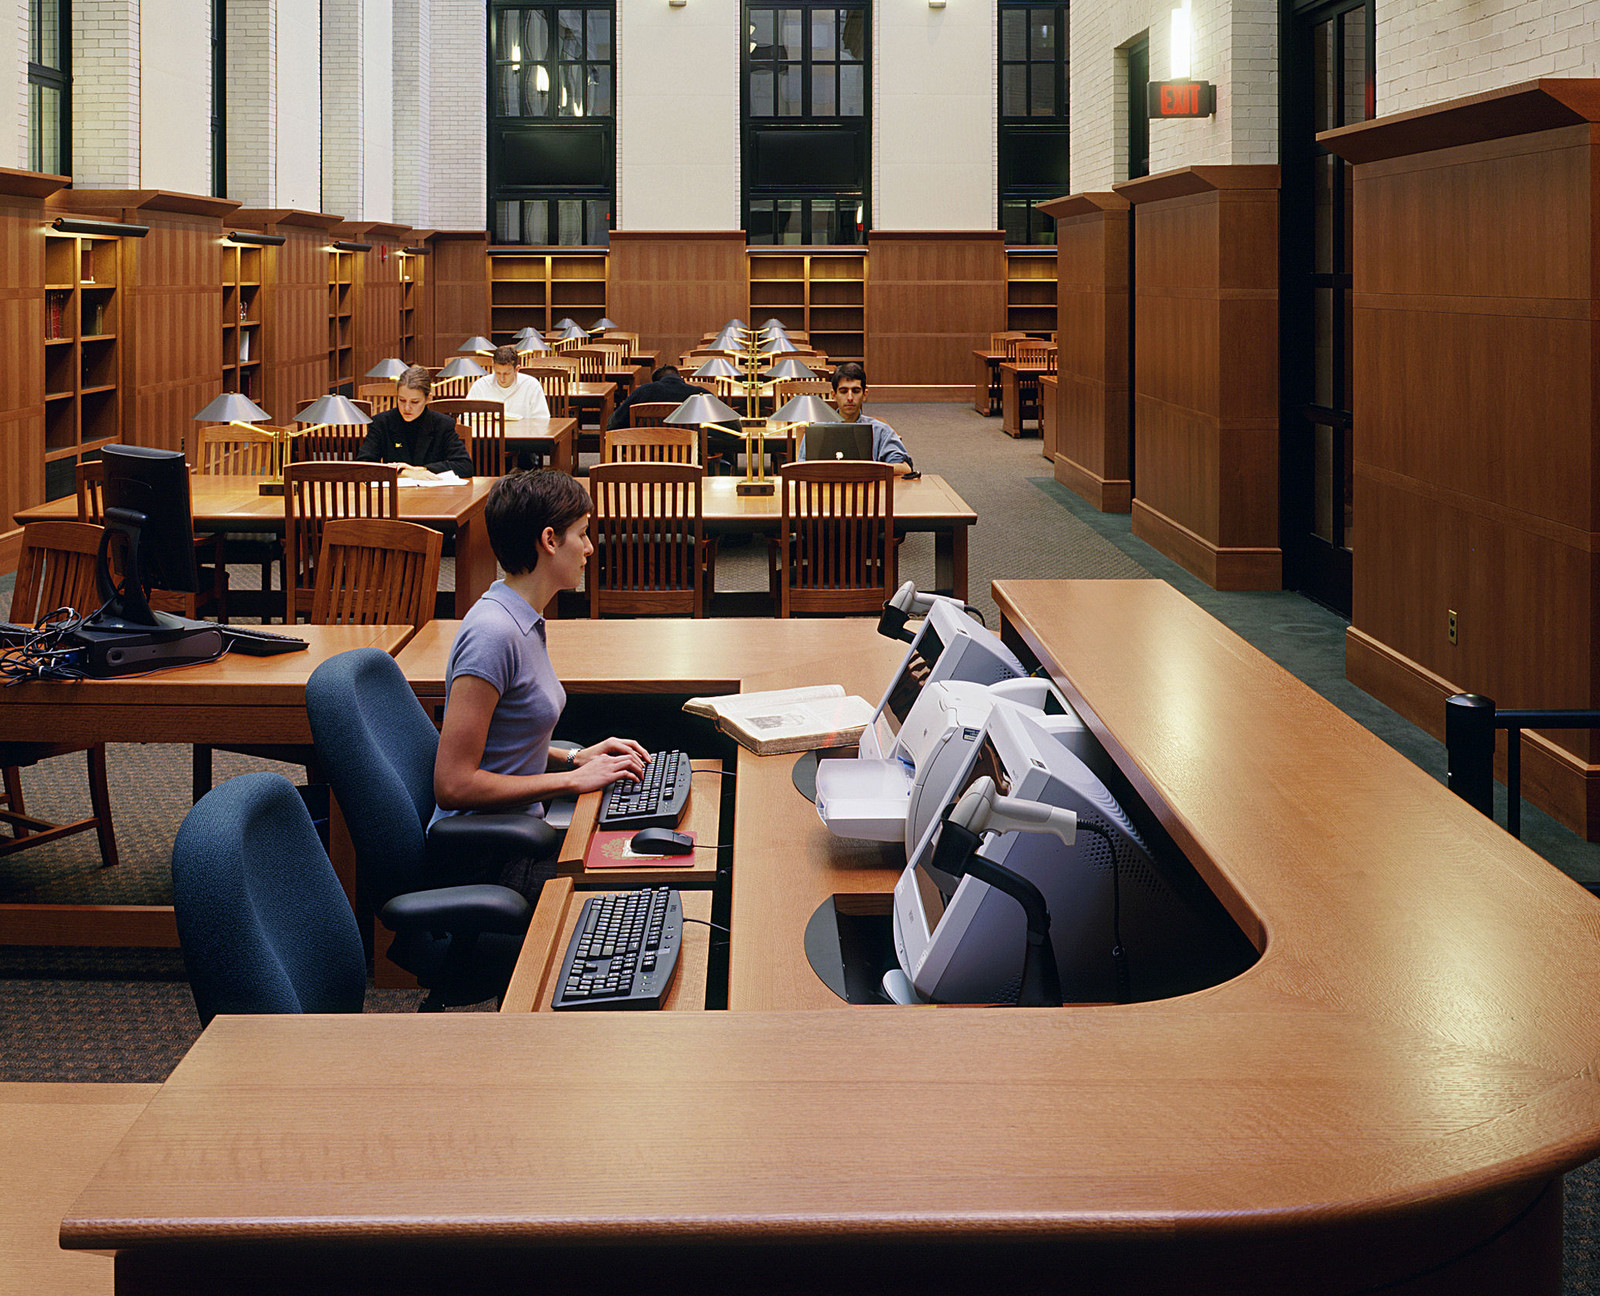 The circulation desk and the furniture in this space make for a warm and welcoming environment. Even with the high arched-glass ceilings, the warm wood keeps everything to scale.